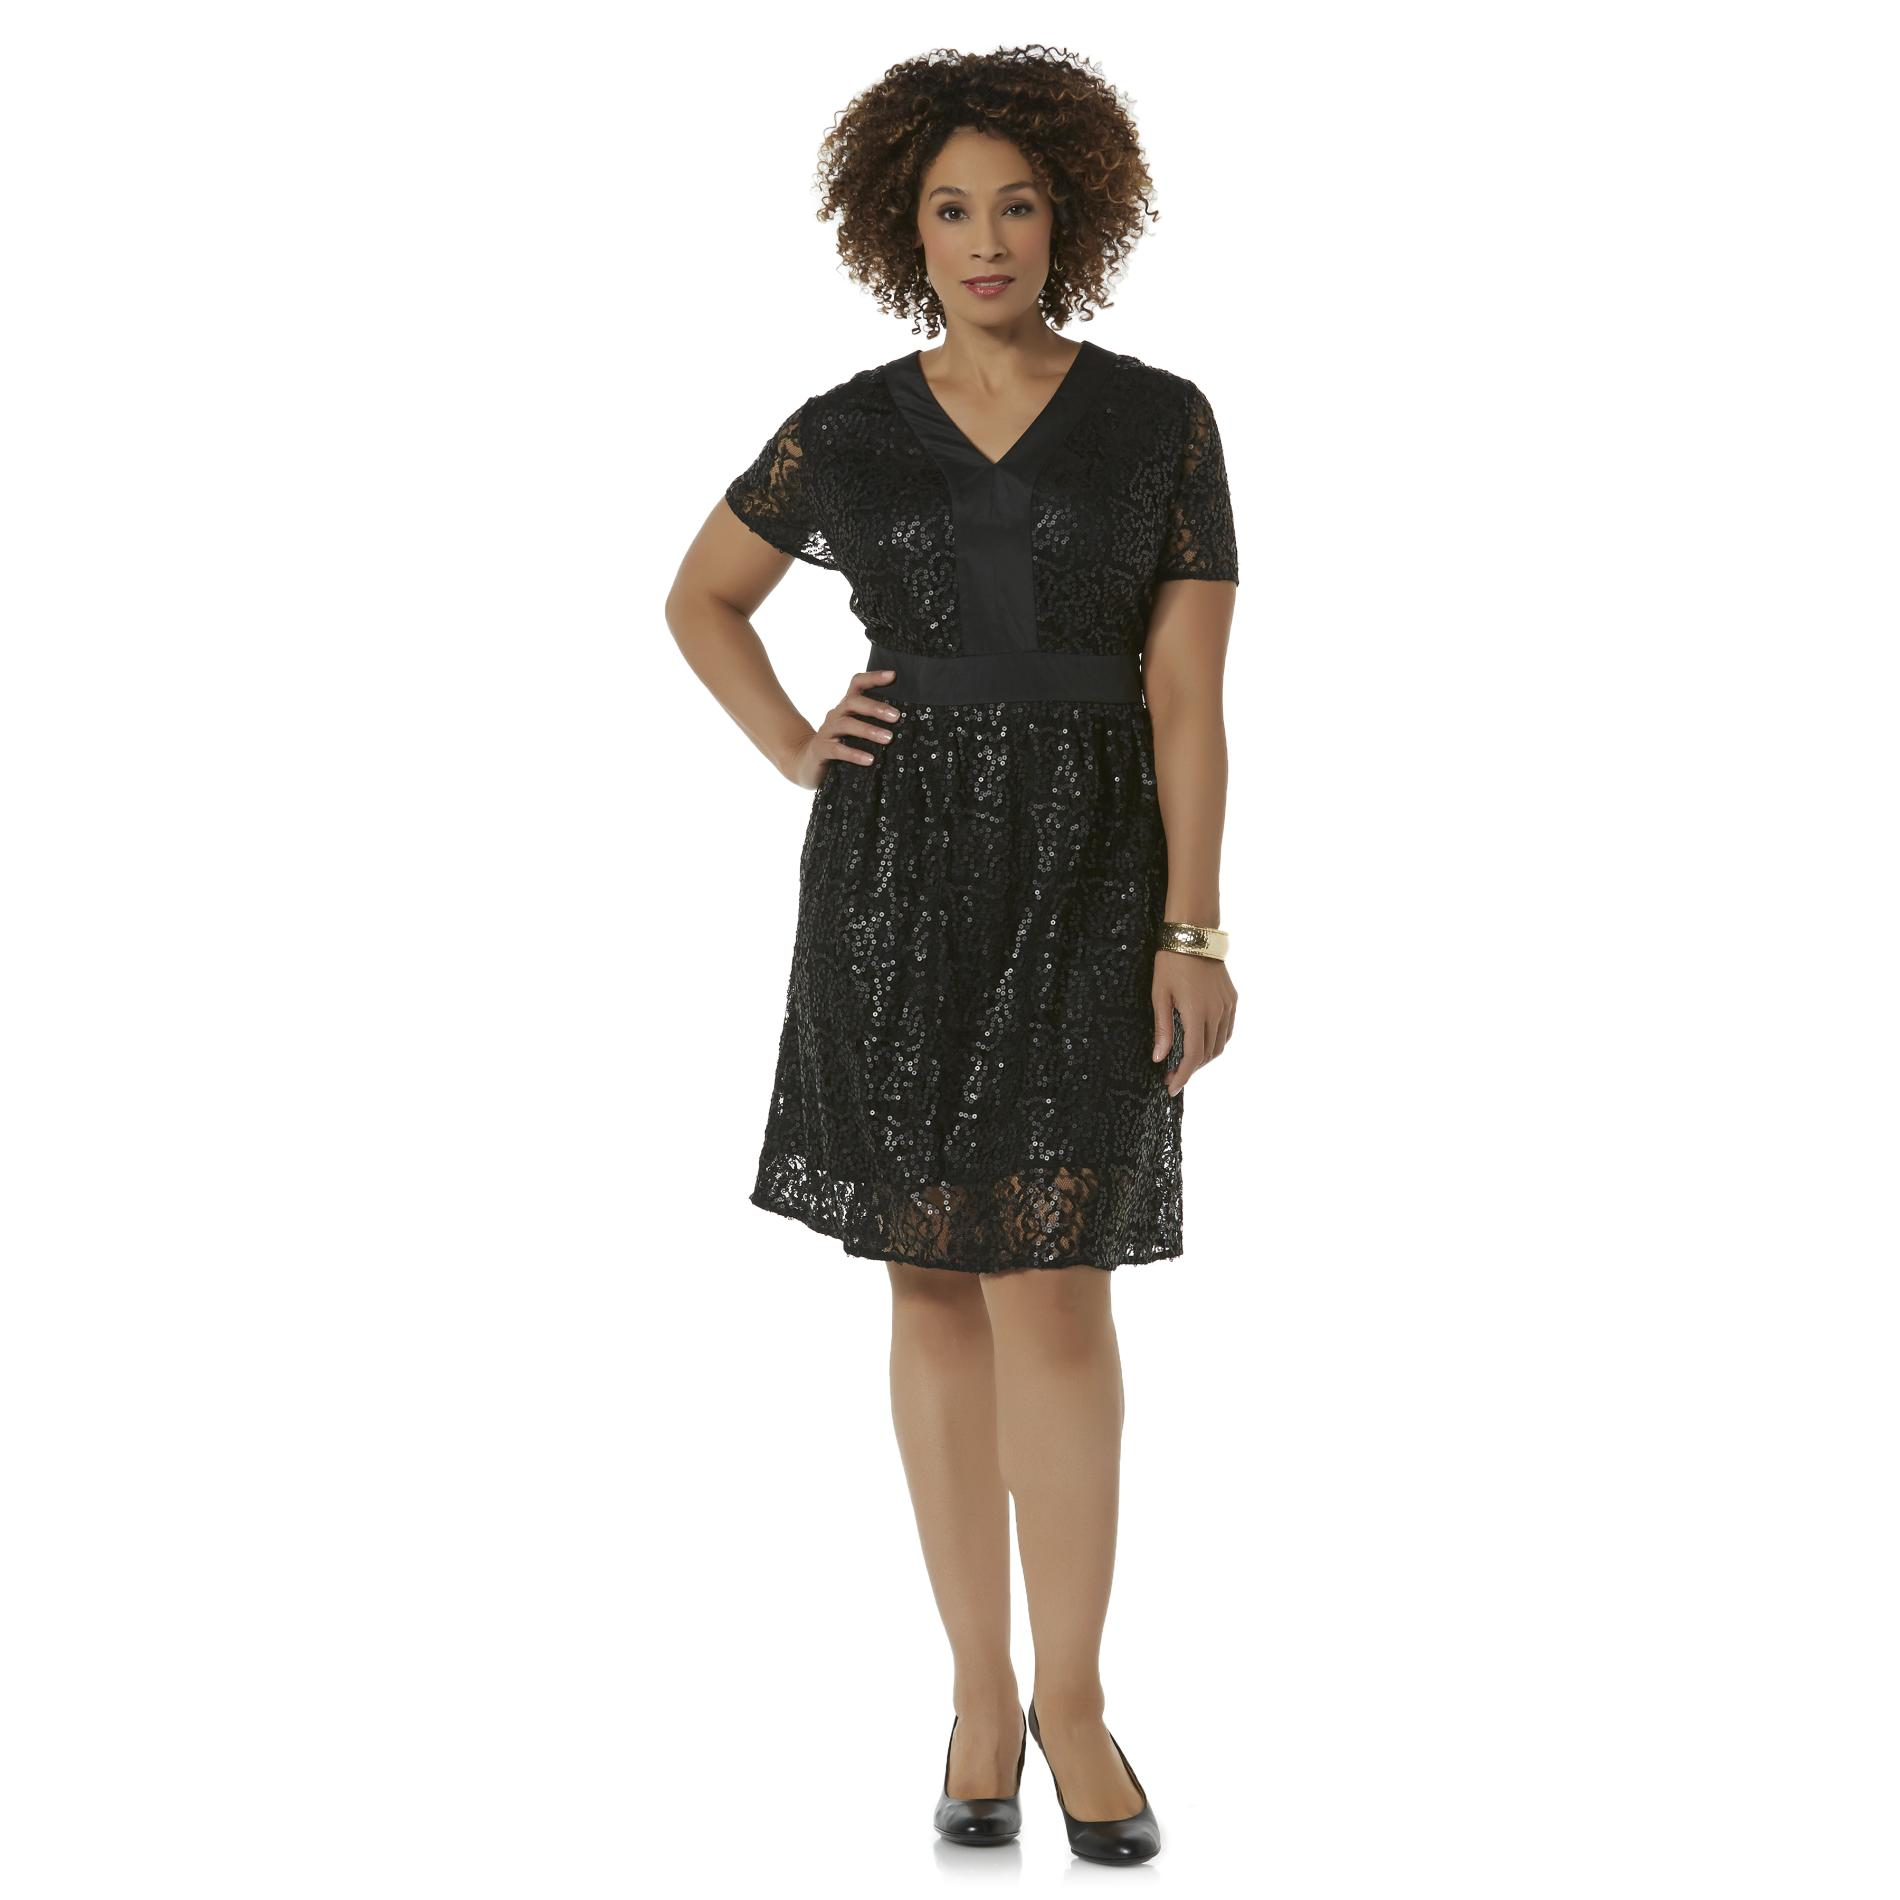 Plus Size Formal Dresses Sears - raveitsafe